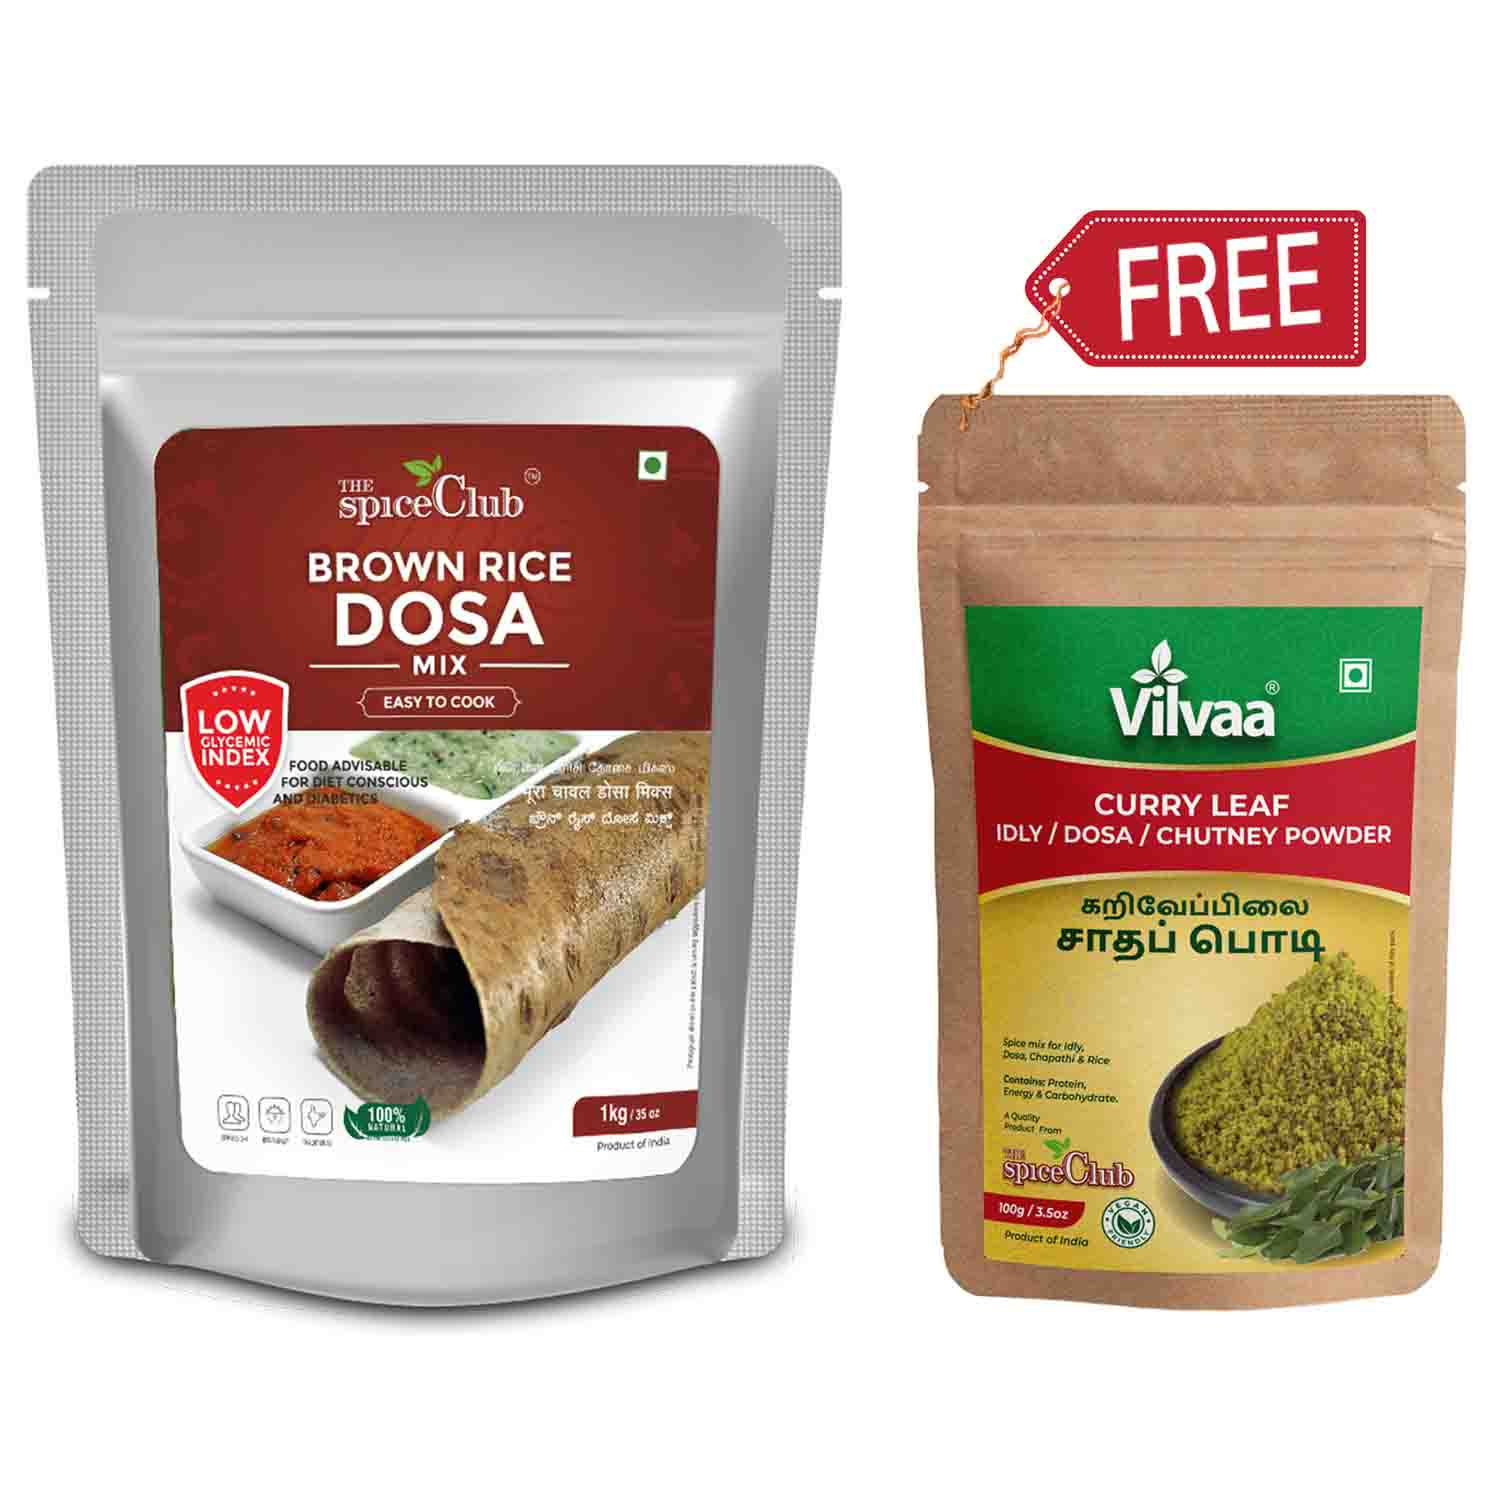 Brown Rice Dosa Mix 1 Kg - (Vilvaa Curry Leaf Chutney Powder 100Gm Free)